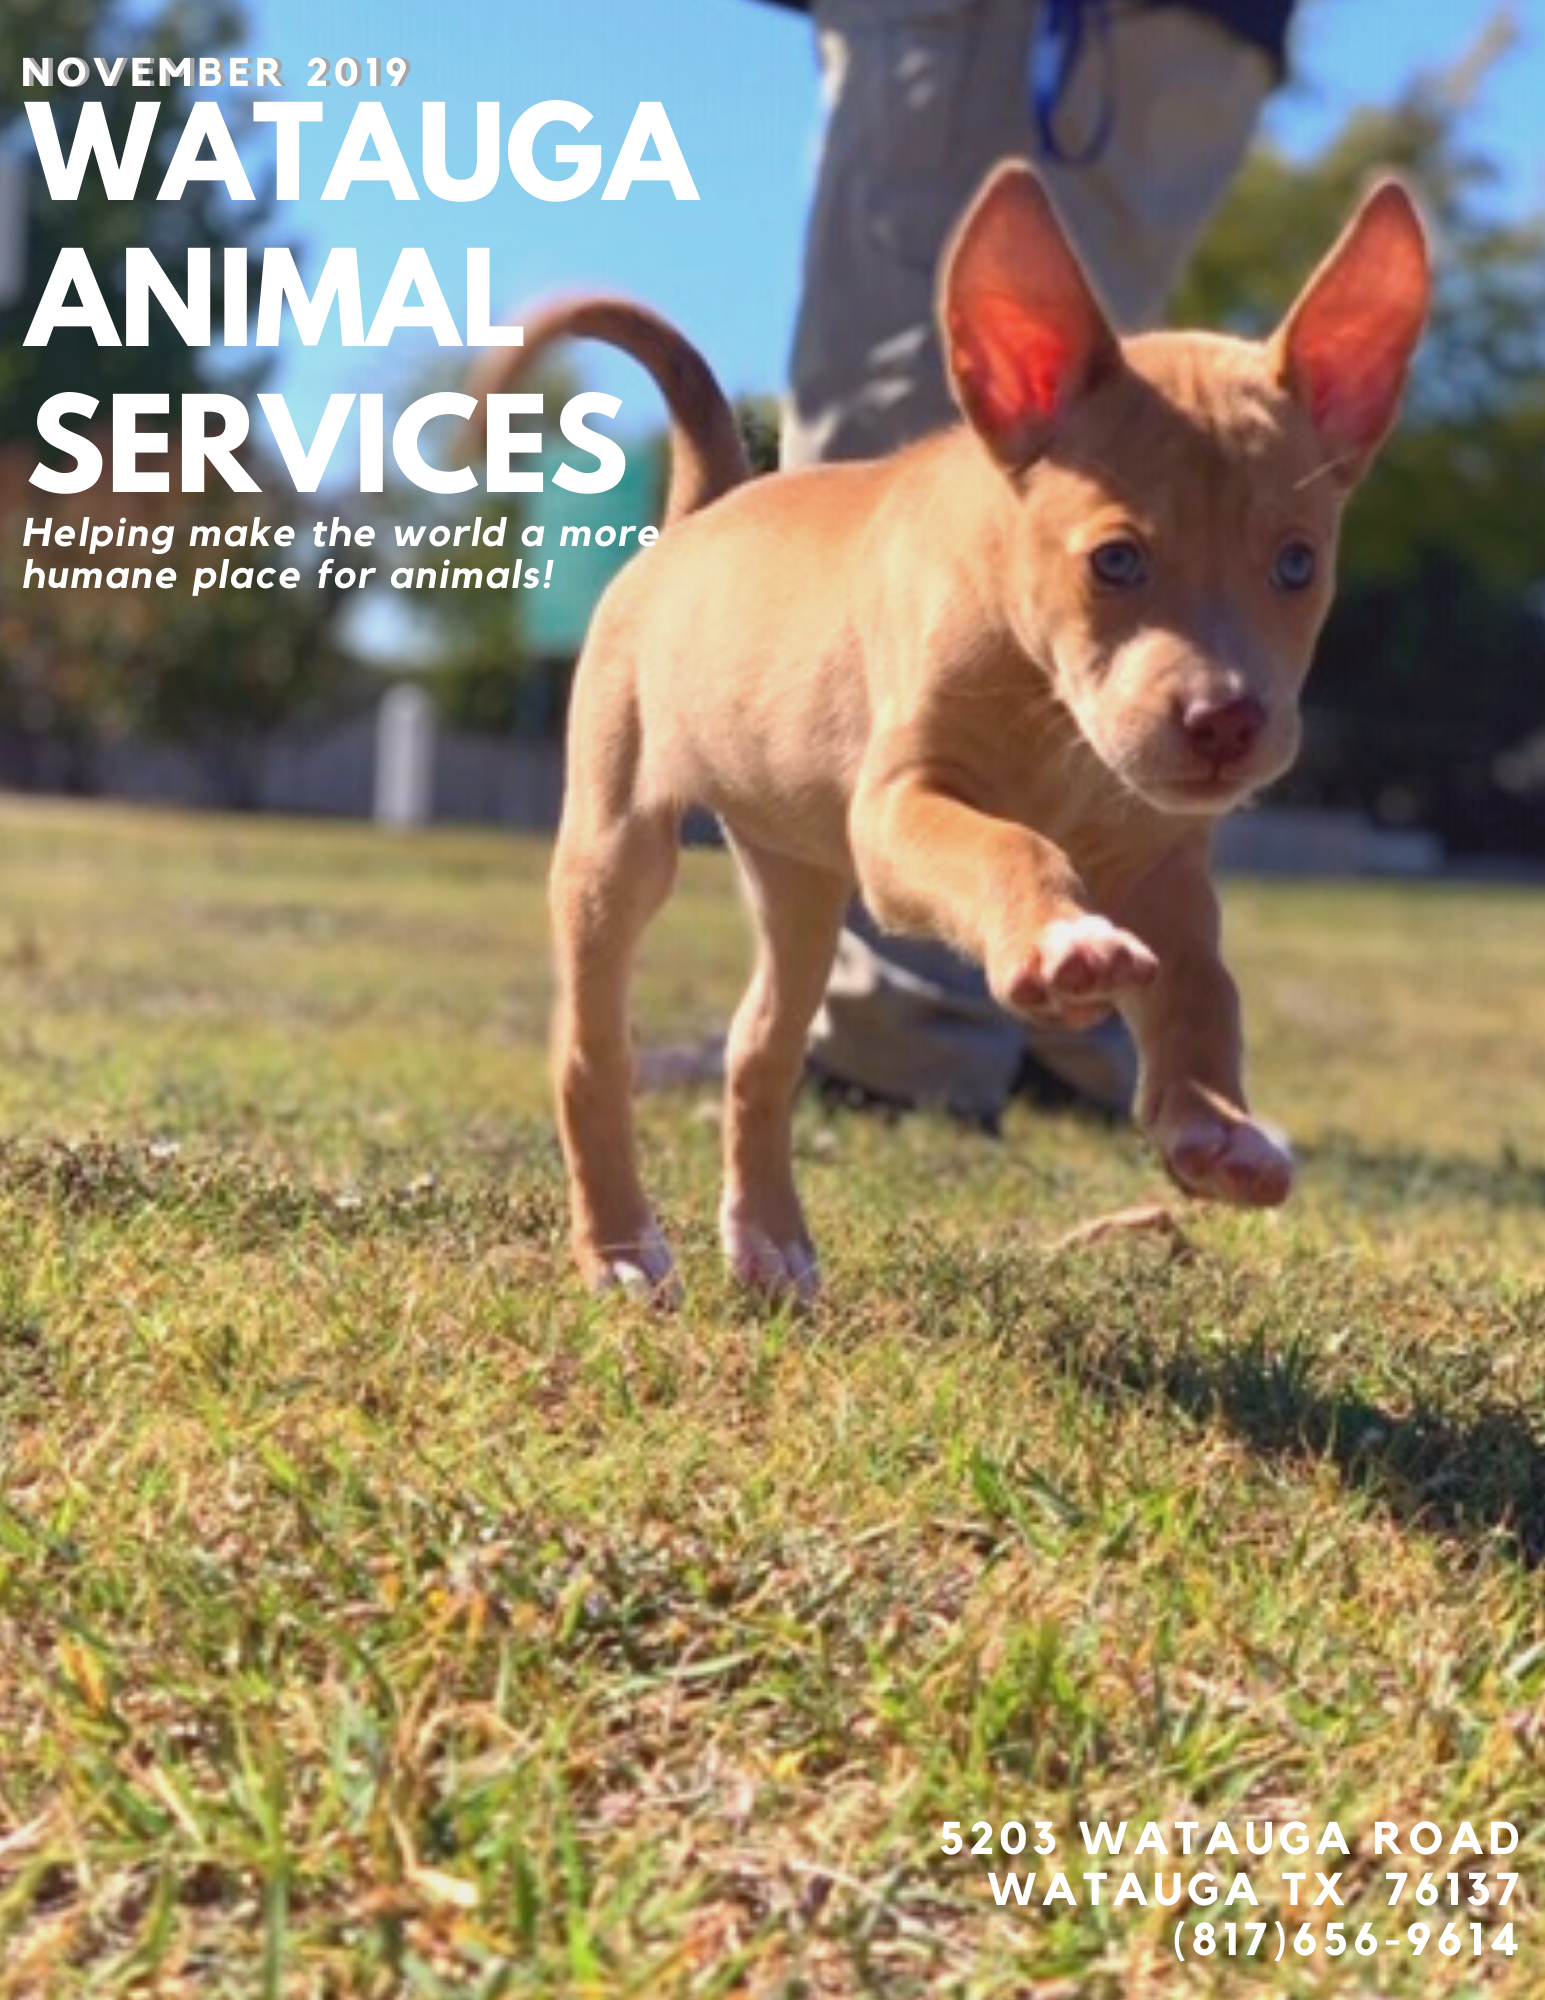 Watauga Animal Services NOVEMBER 2019 Front Page